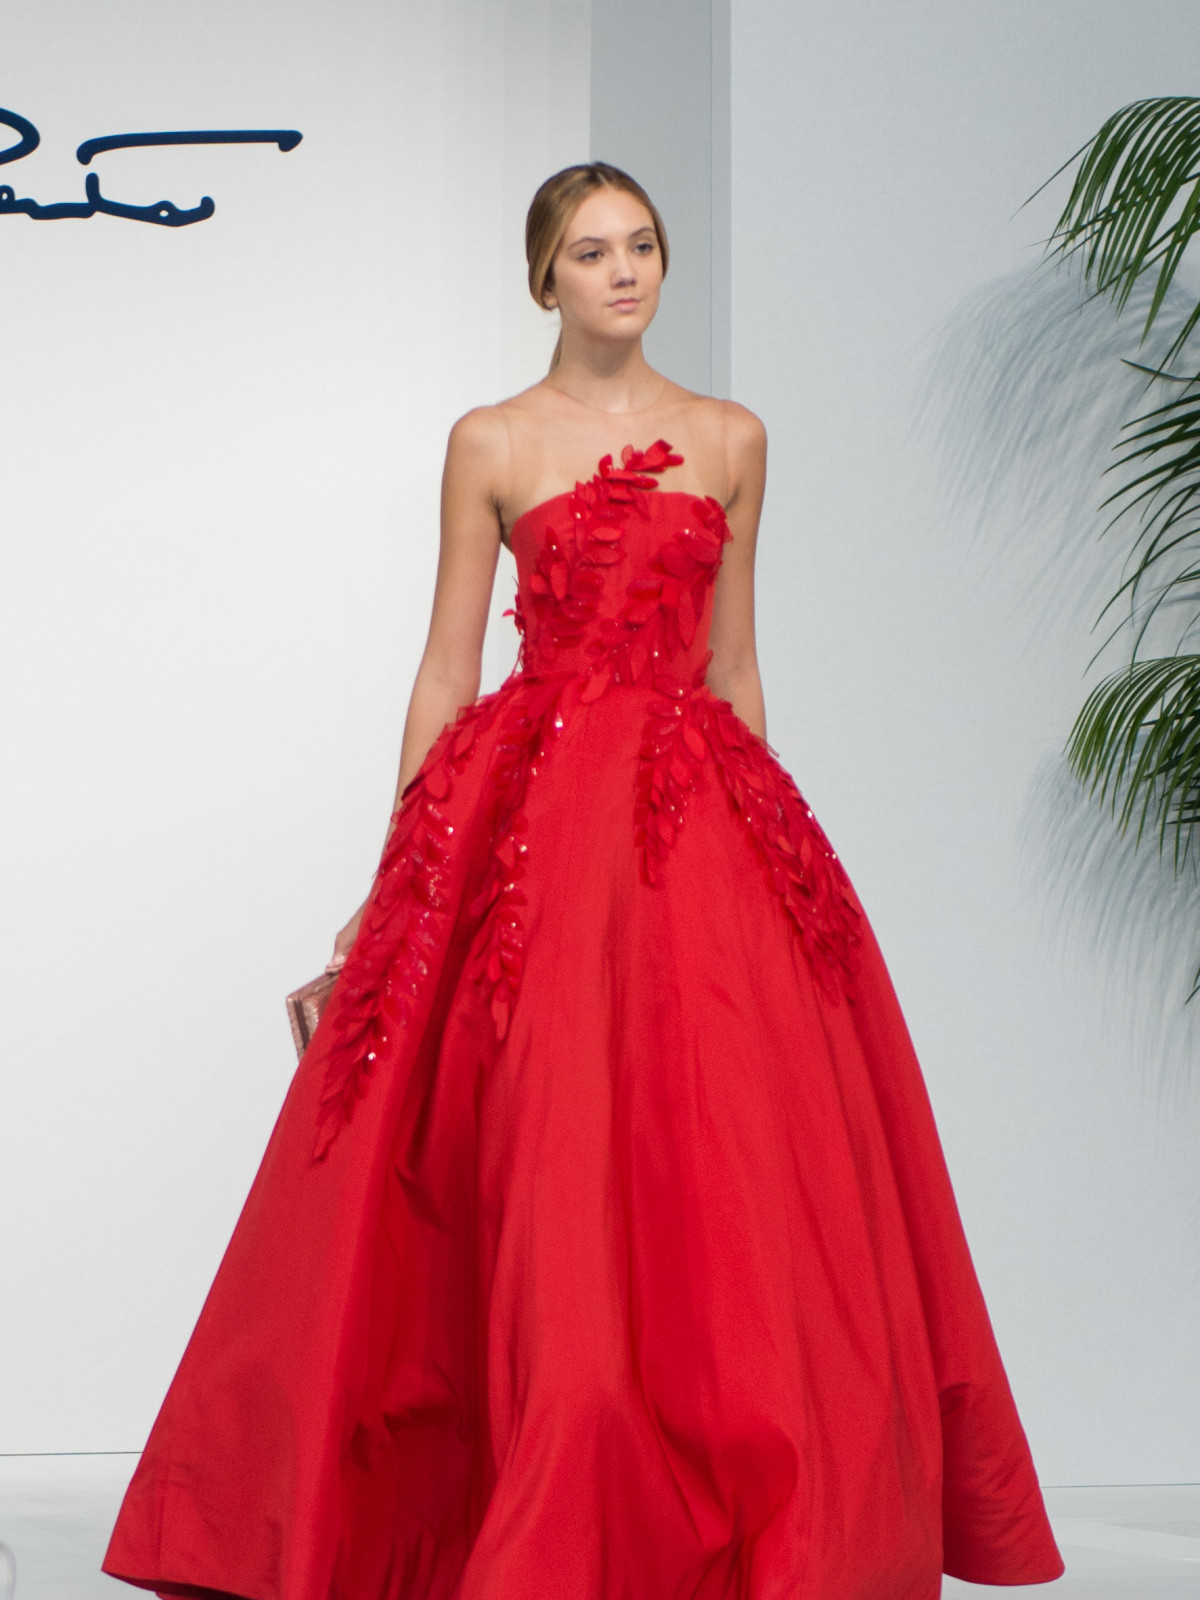 Oscar de la Renta 2018 resort collection red gown